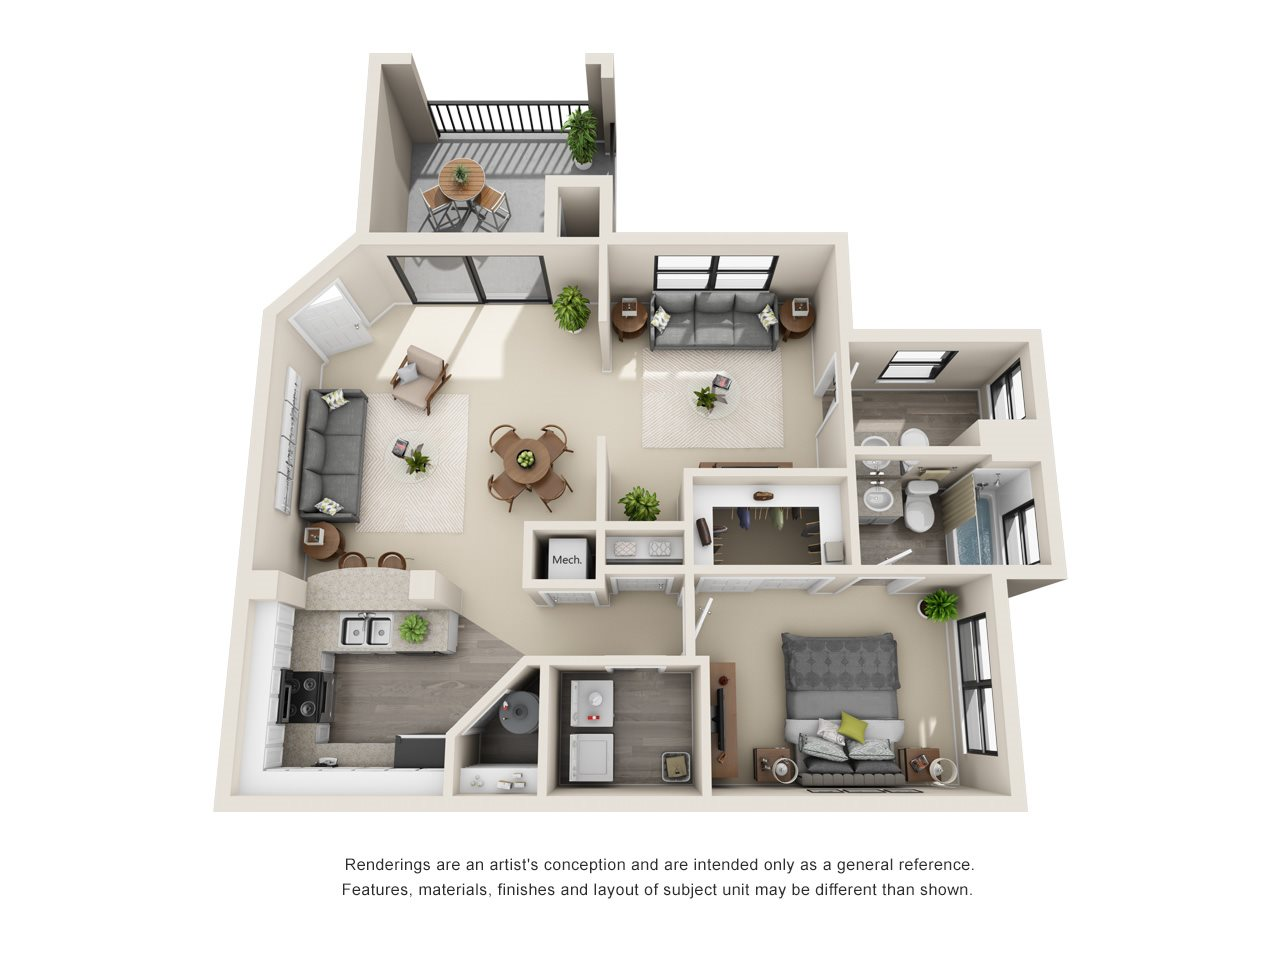 Tallahassee apartments for rent the monroe floor plans - 1 bedroom apartments tallahassee ...